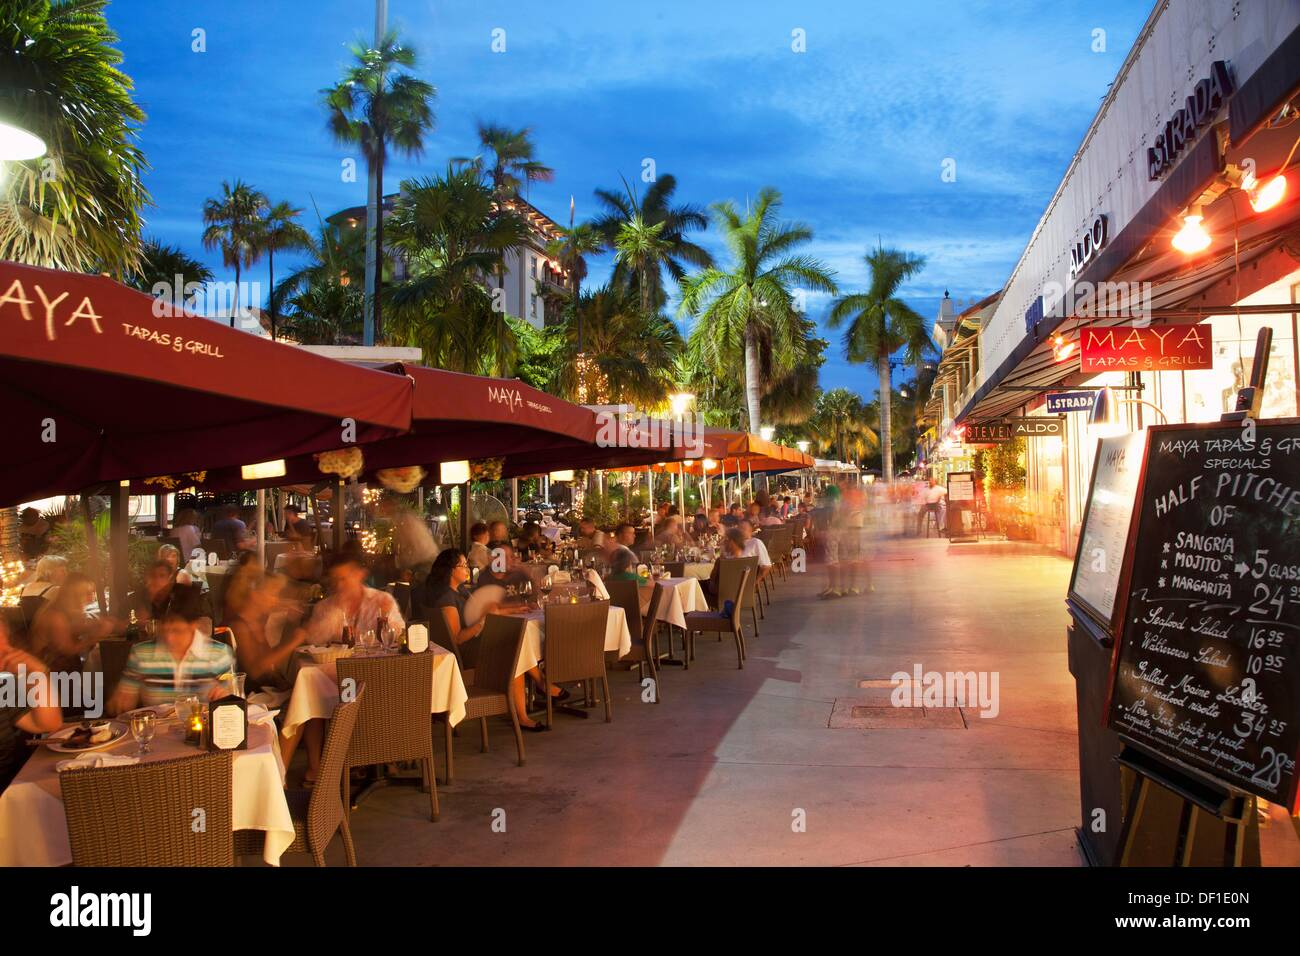 Lincoln Road is a world-famous shopping & dining promenade in the heart of South beach that features more than national retailers, designer brands, boutiques, art galleries, restaurants, and sidewalk cafes. Lincoln Road is the place to be in South Beach.